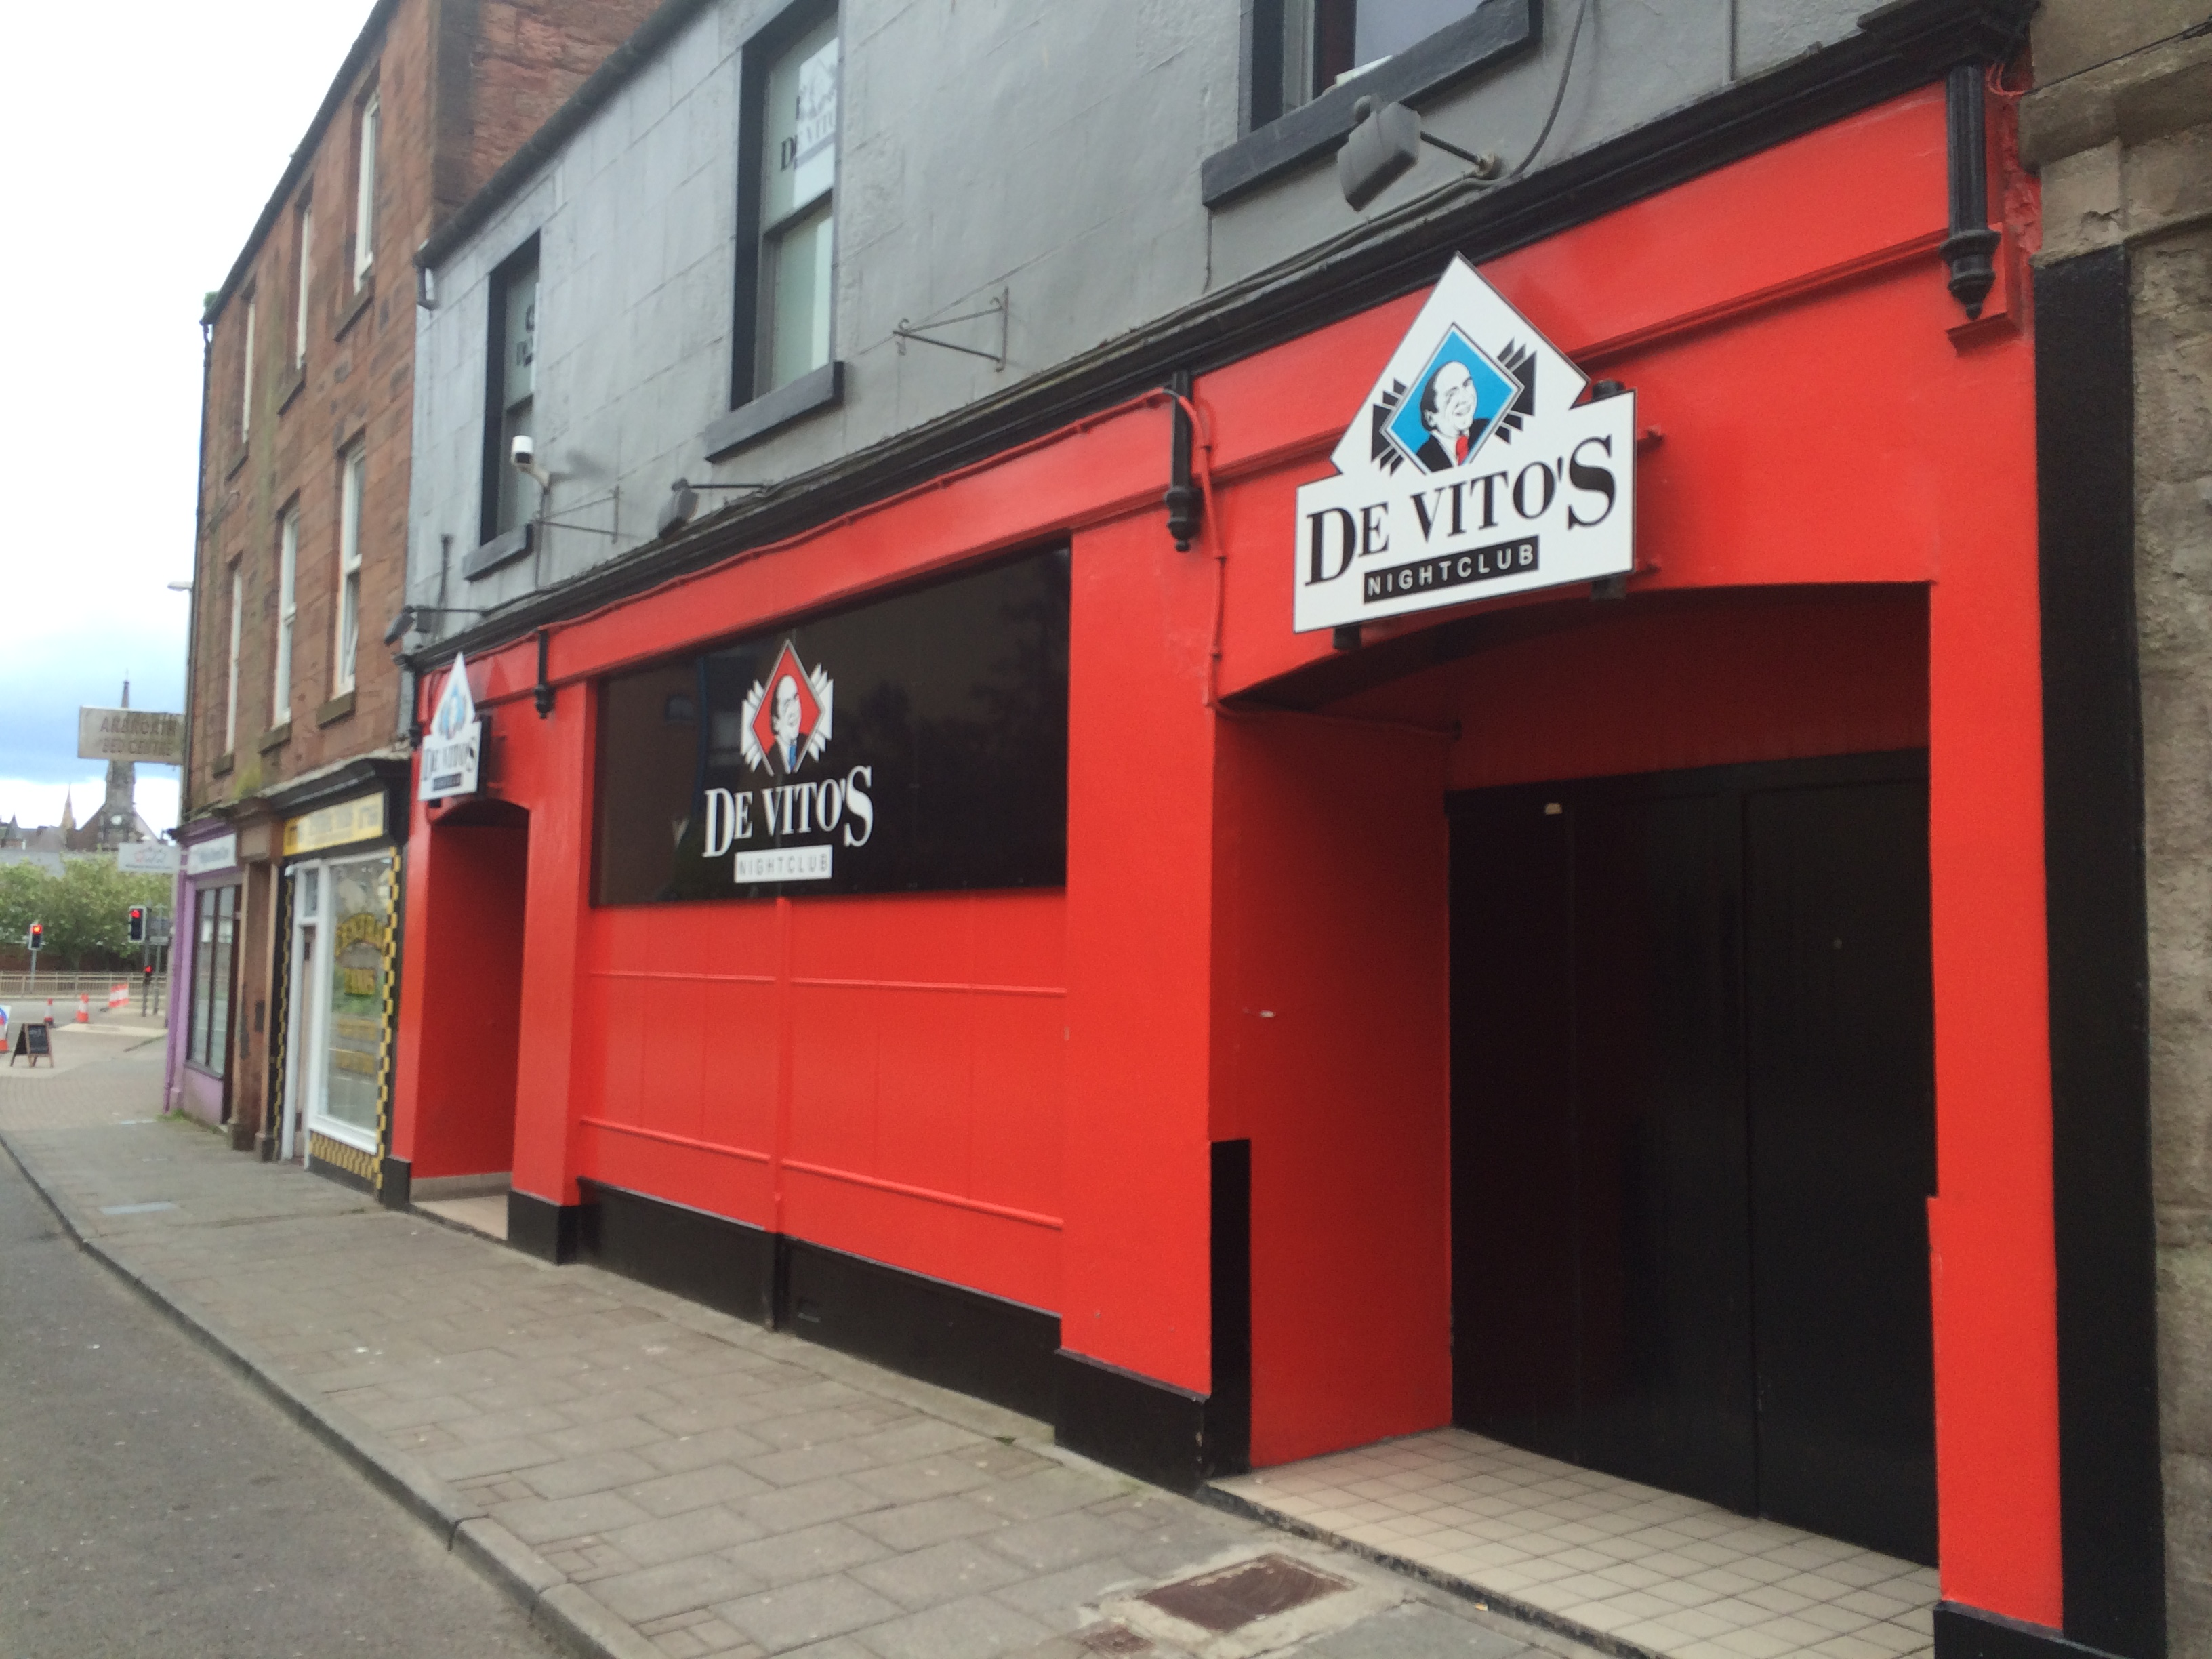 The attack happened at De Vito's nightclub